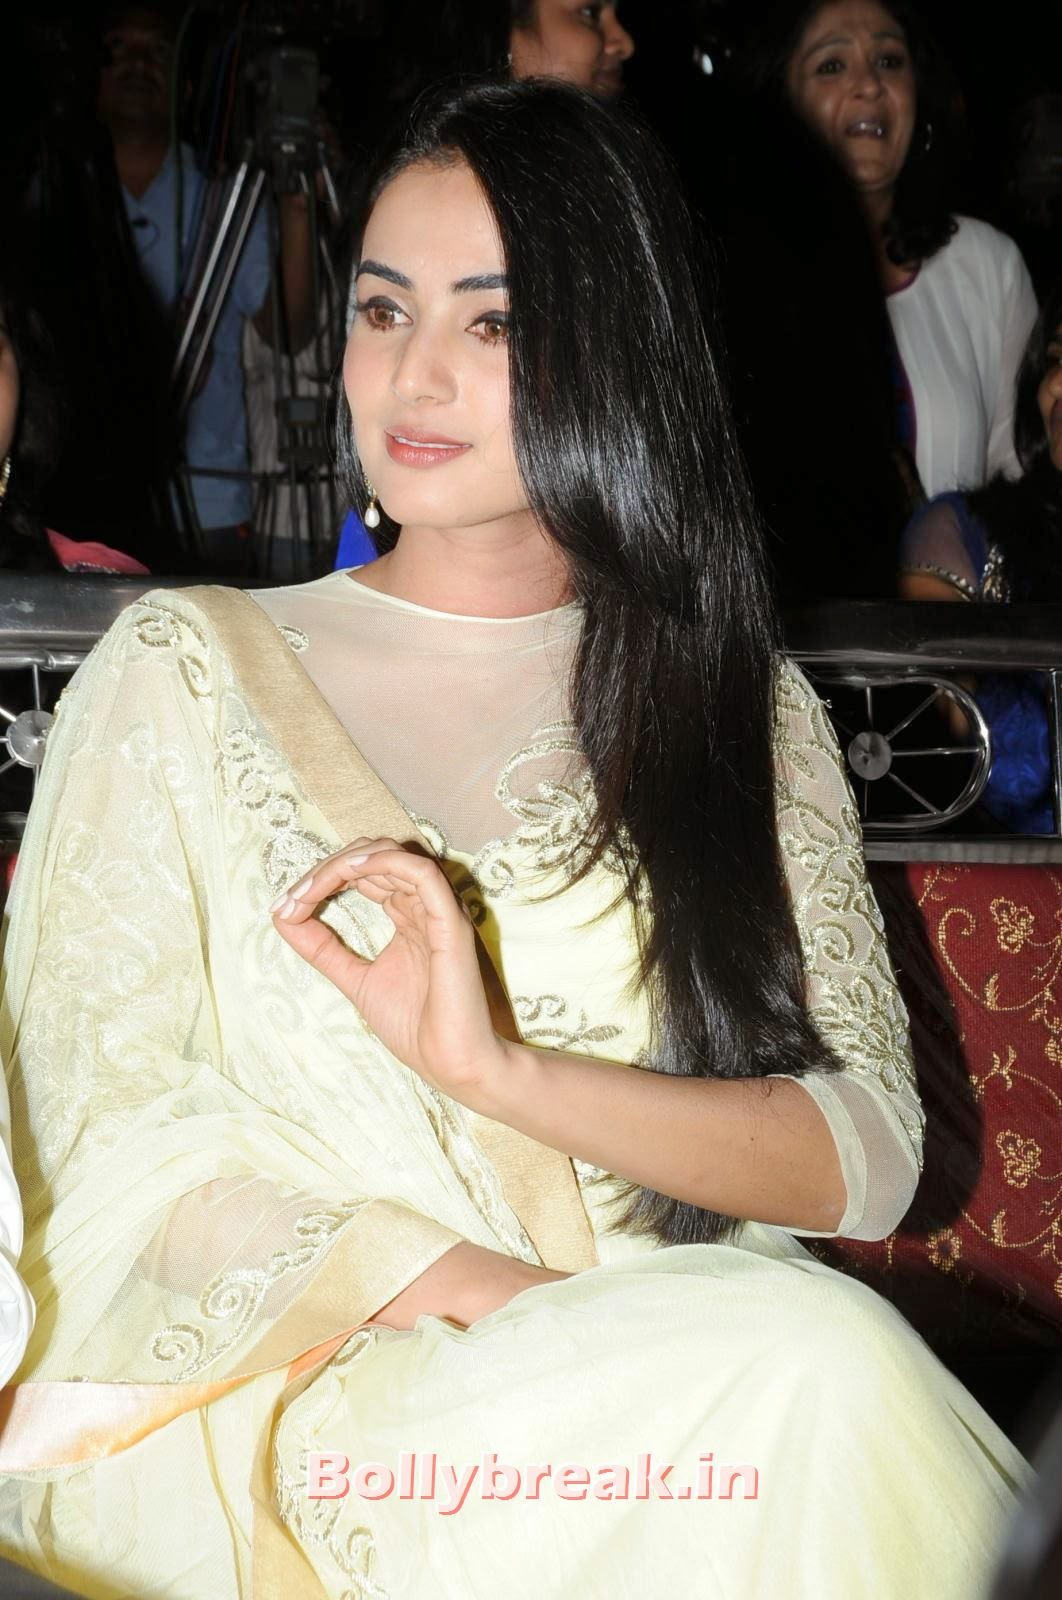 Bollywood's Cutie Pie Sonal chauhan at an Event looking Beautiful